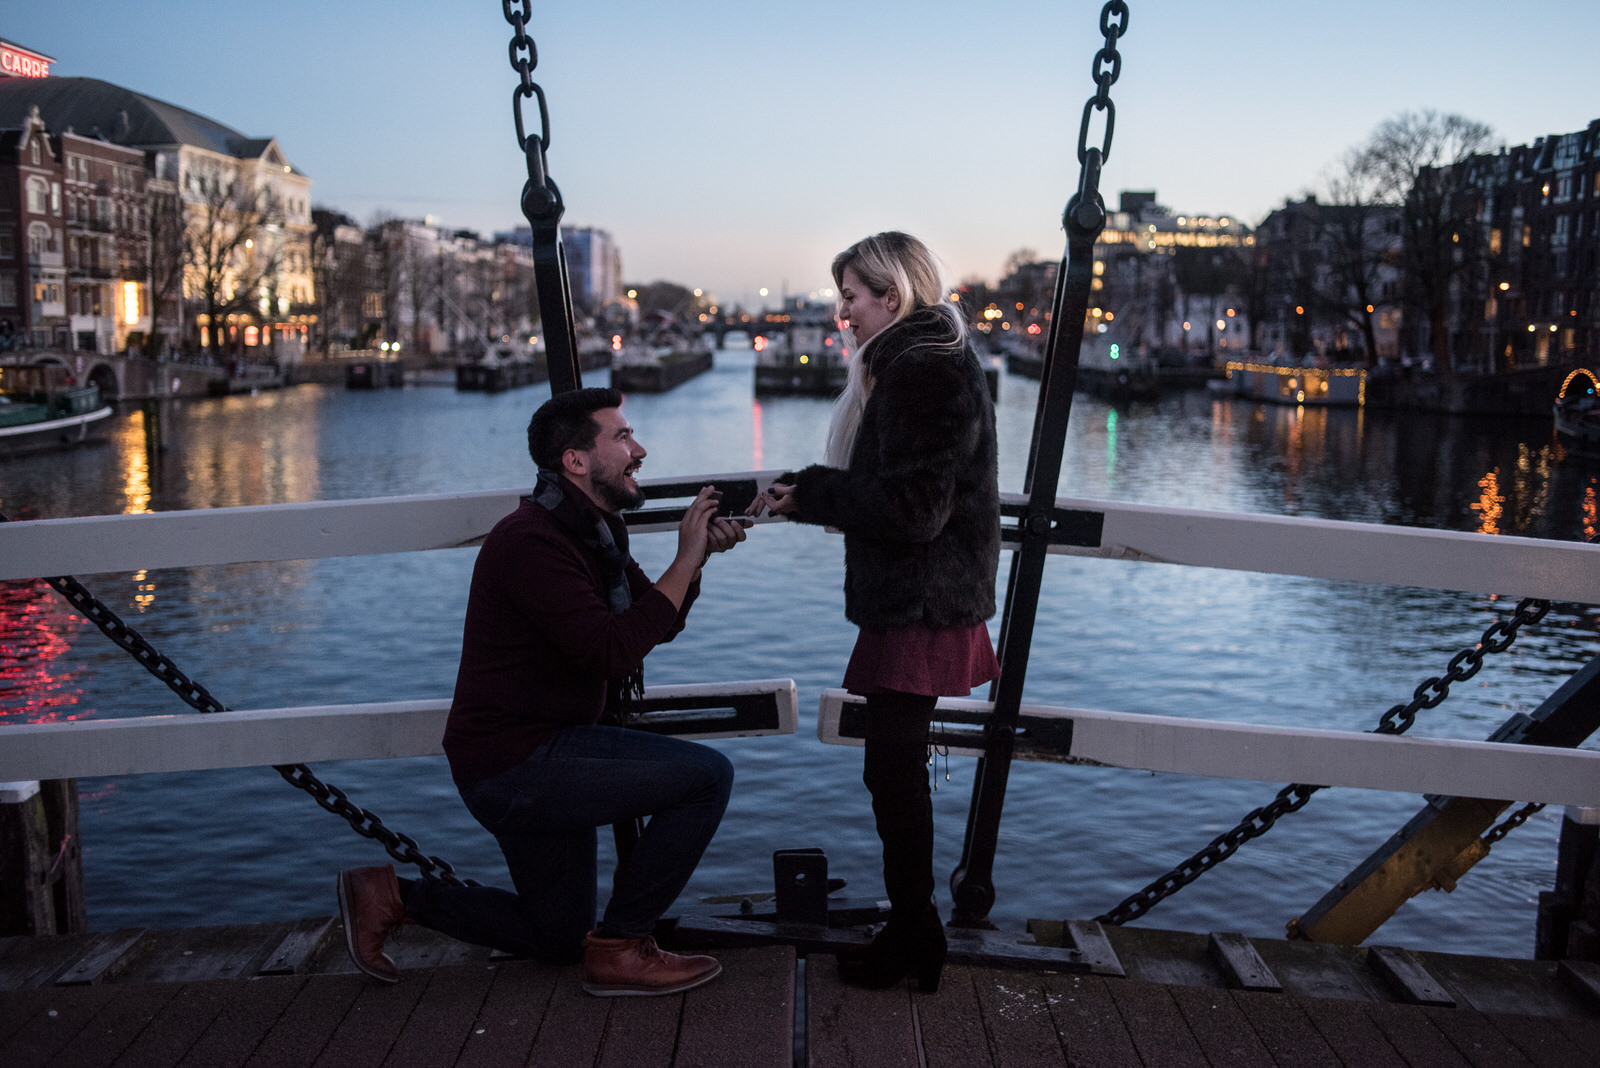 5 most asked questions about proposal photography in Amsterdam